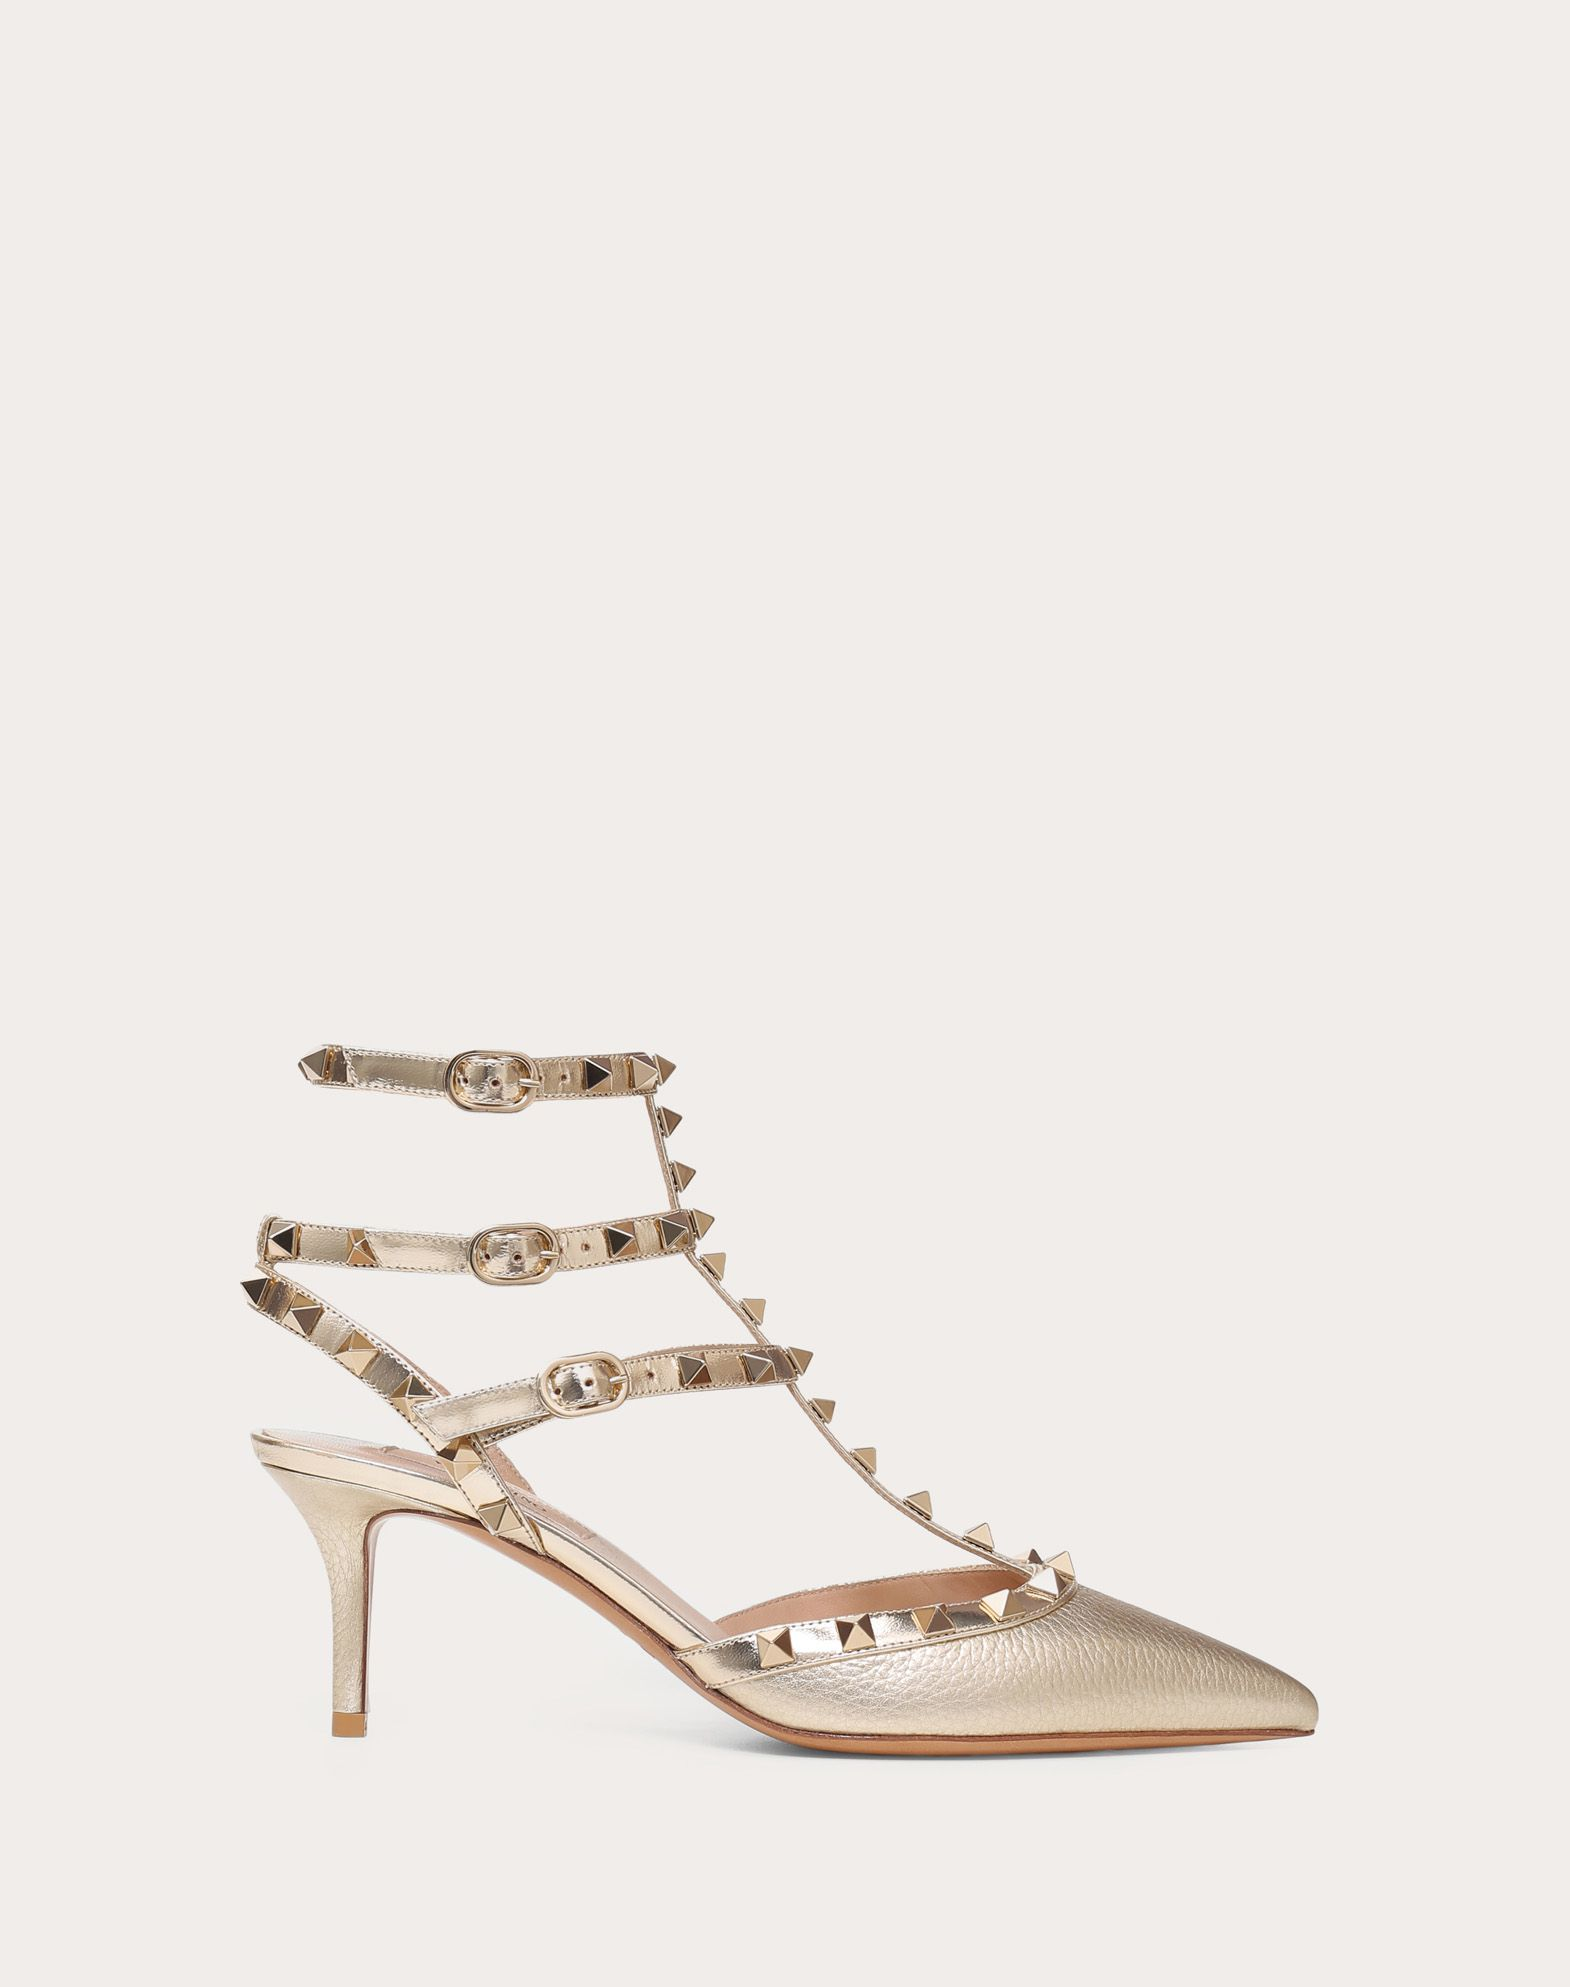 VALENTINO Solid color Spike heel Laminated effect Textured leather Studded Buckling ankle strap closure Narrow toeline Leather lining Leather sole  45400061ck